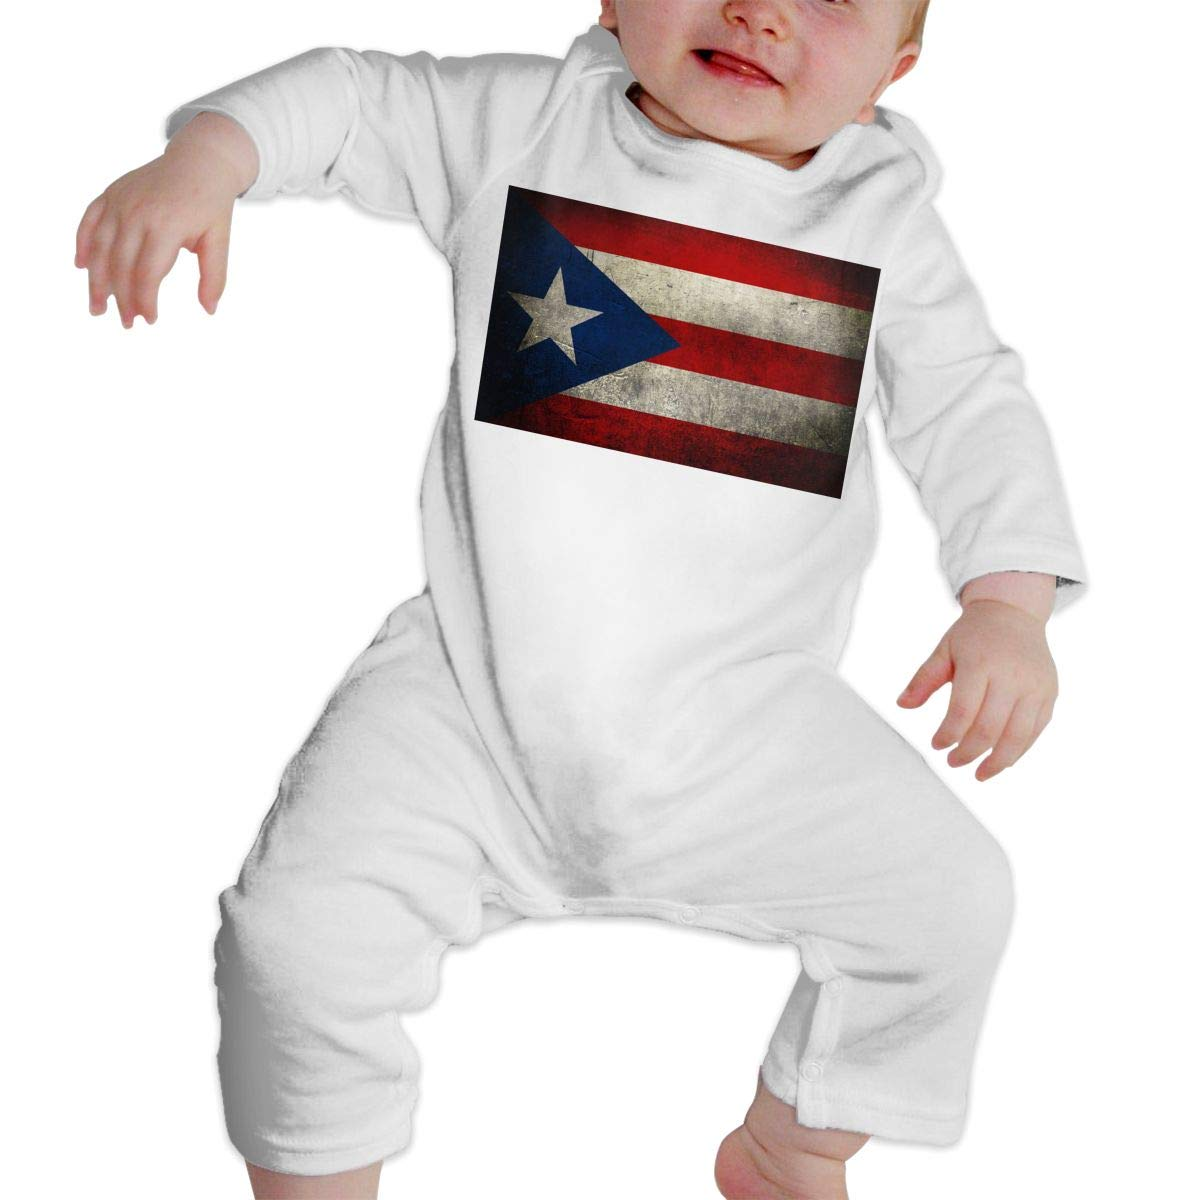 A1BY-5US Newborn Baby Boys Girls Cotton Long Sleeve Retro Puerto Rican Flag Baby Clothes One-Piece Romper Clothes